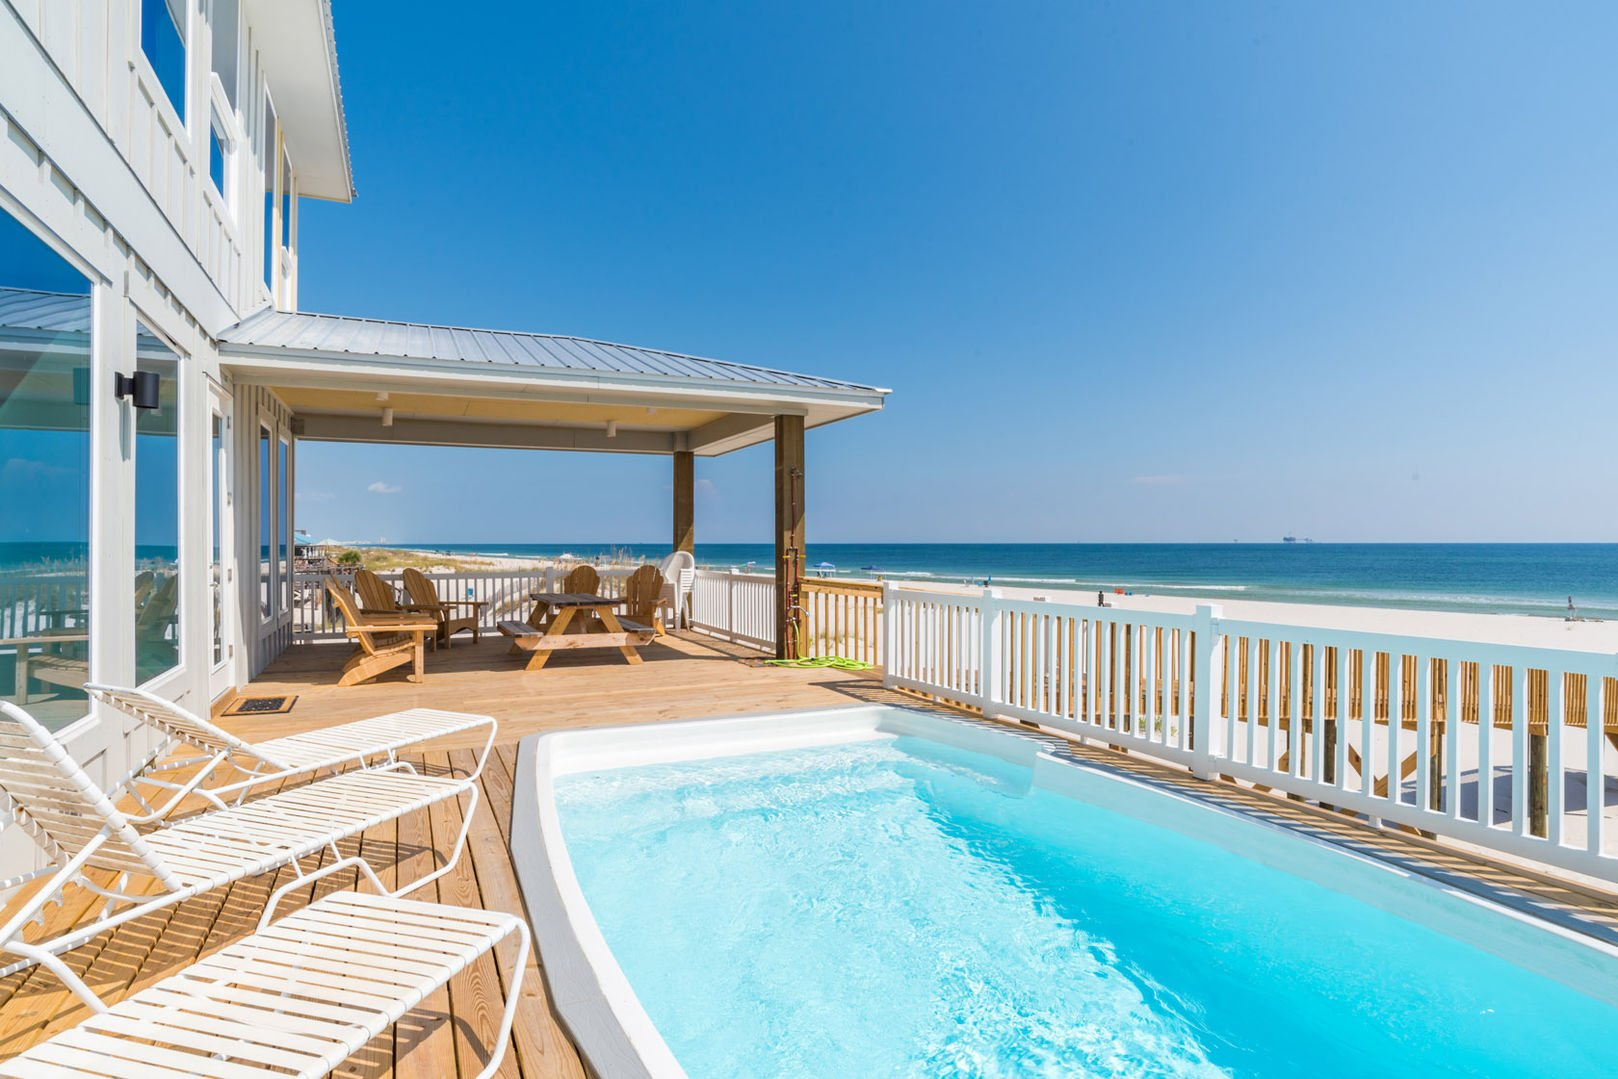 You Will Love the Pool at our Vacation Home in Fort Morgan